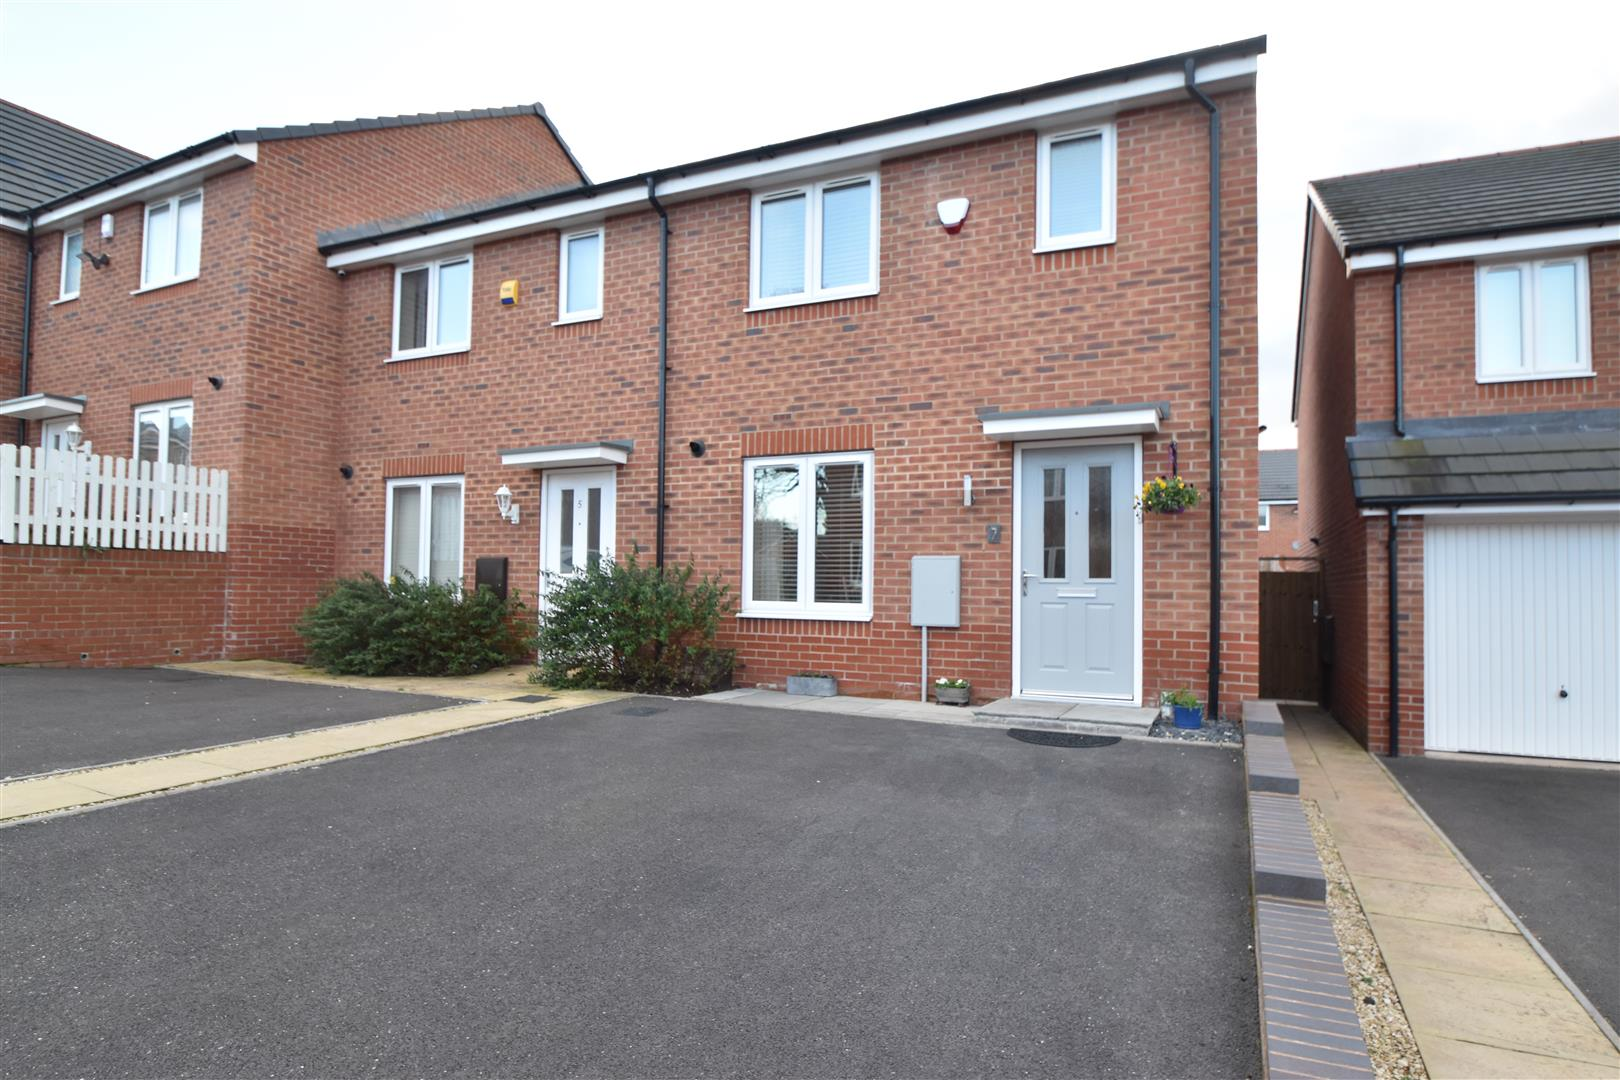 3 Bedrooms End Of Terrace House for sale in Brook Meadow, Wychbold, Droitwich